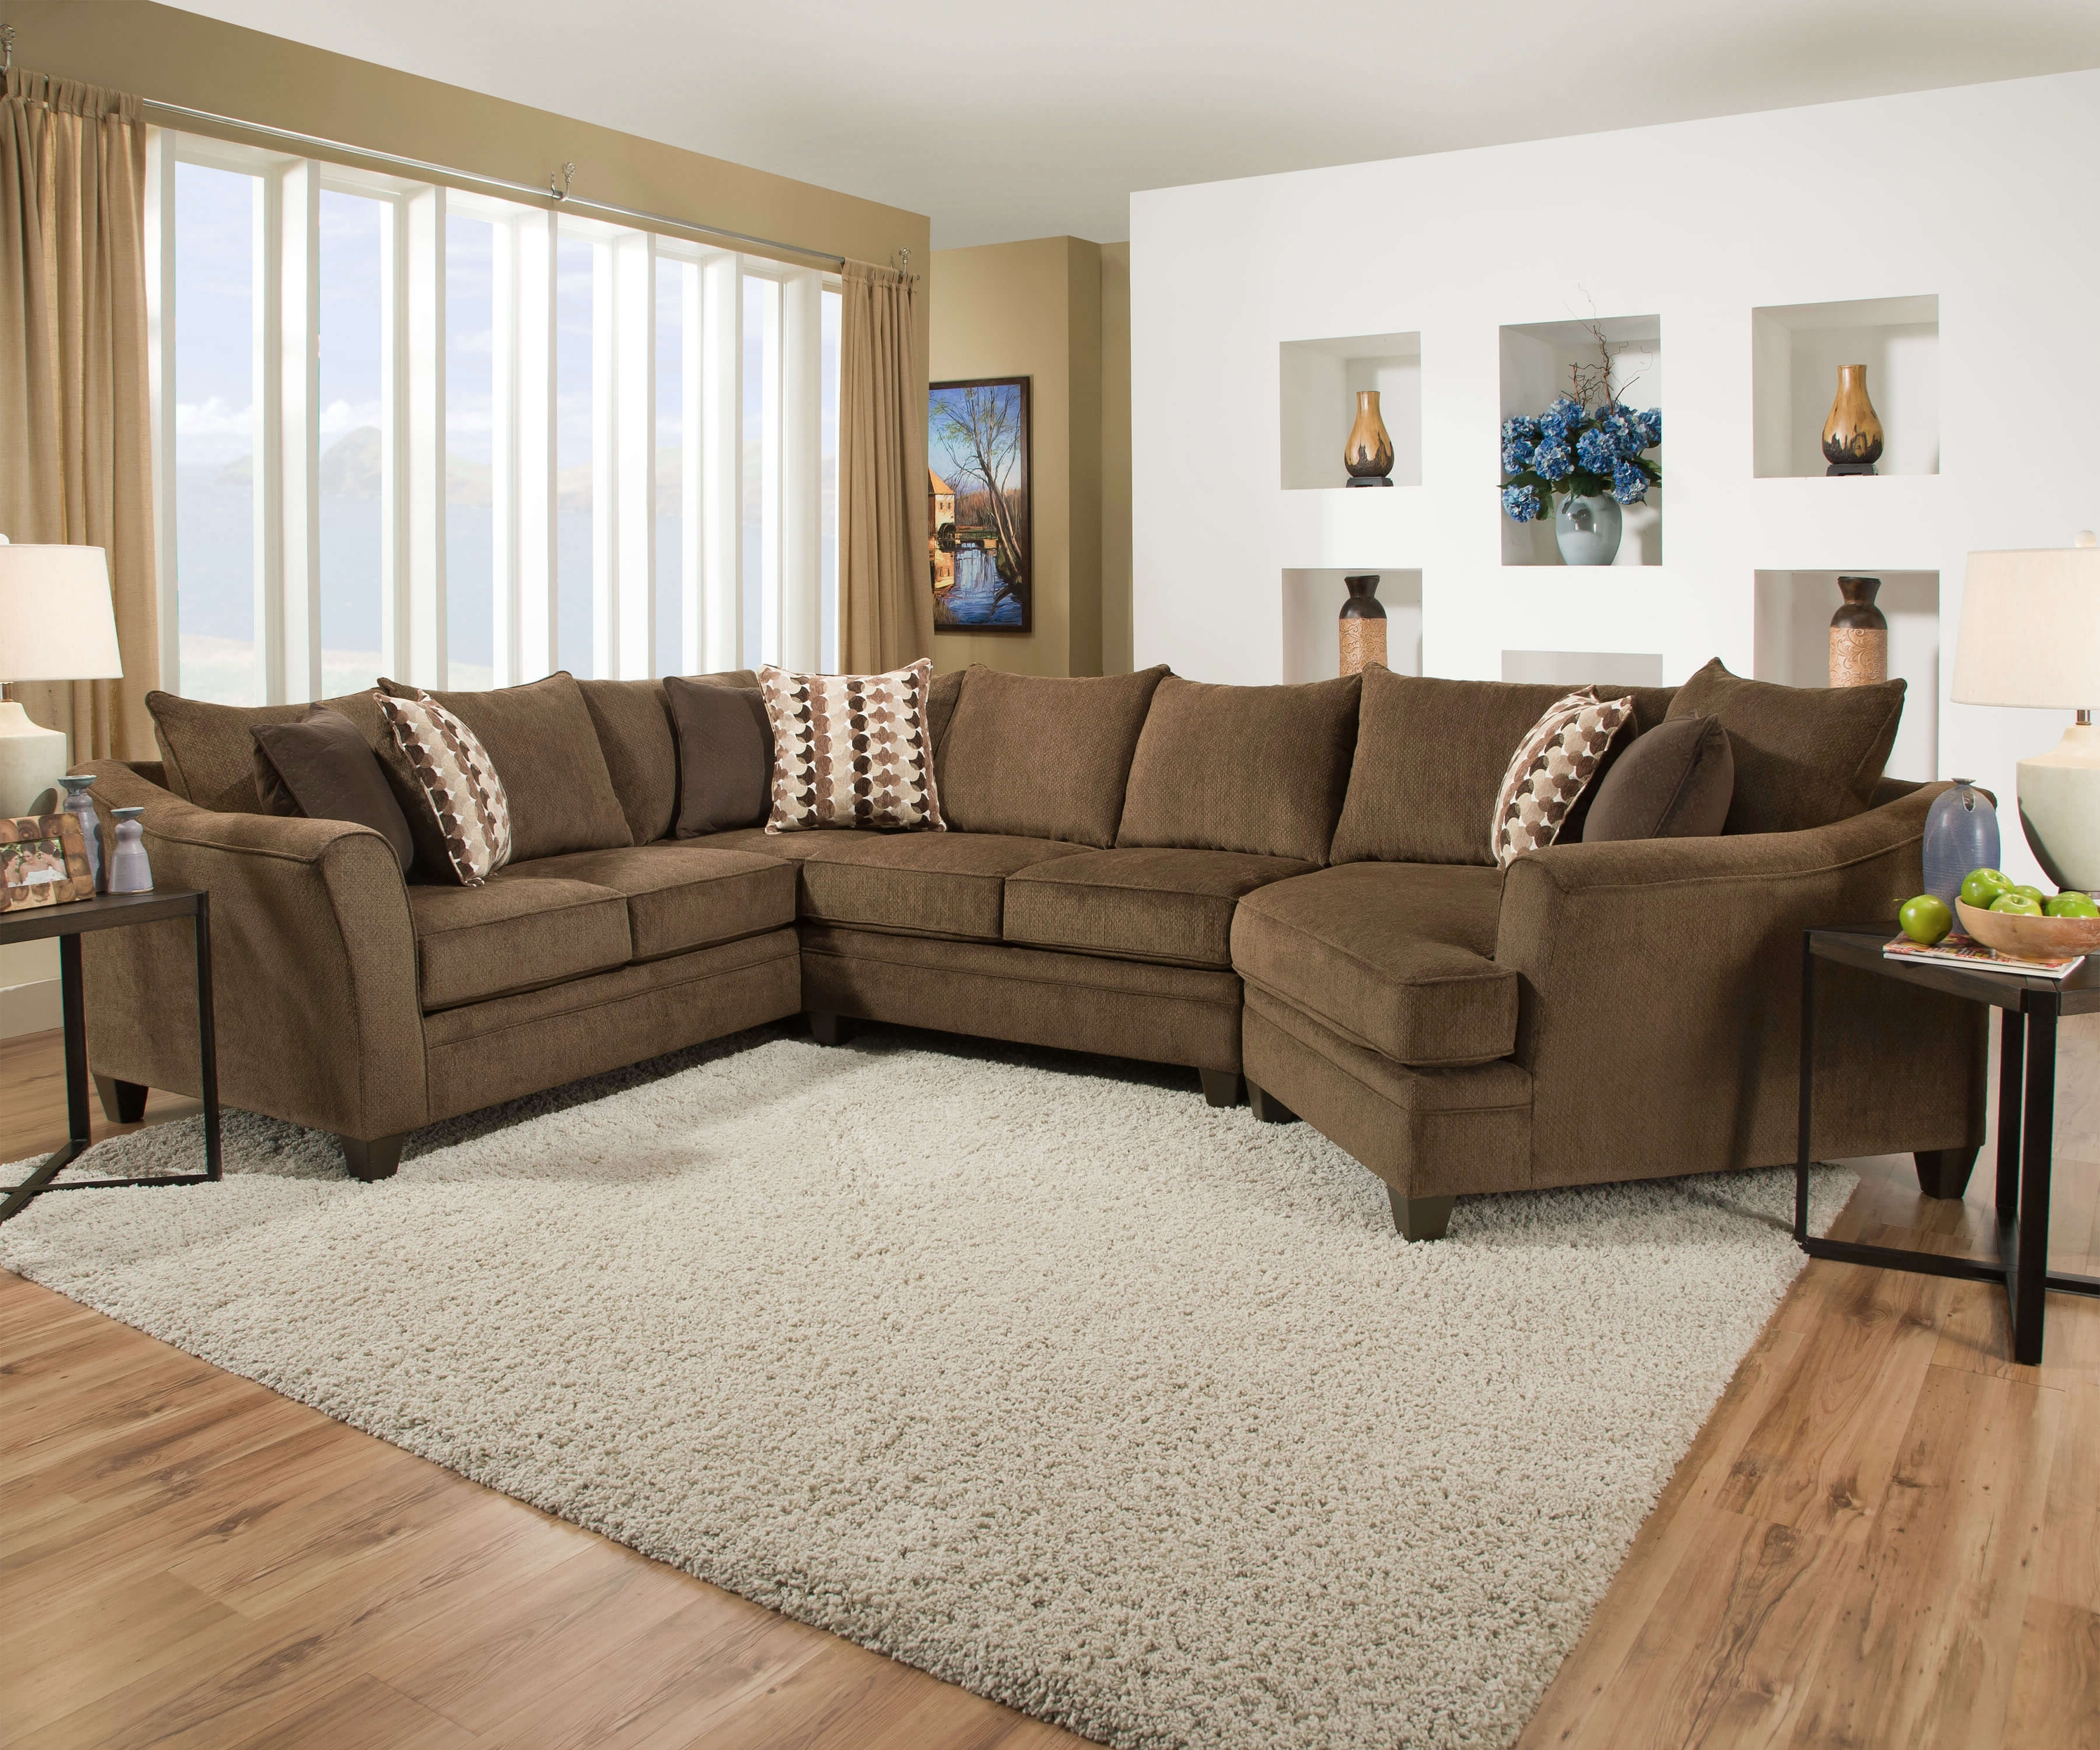 2018 Chestnut Sofa And Loveseatsimmons Intended For Simmons Sectional Sofas (View 7 of 20)